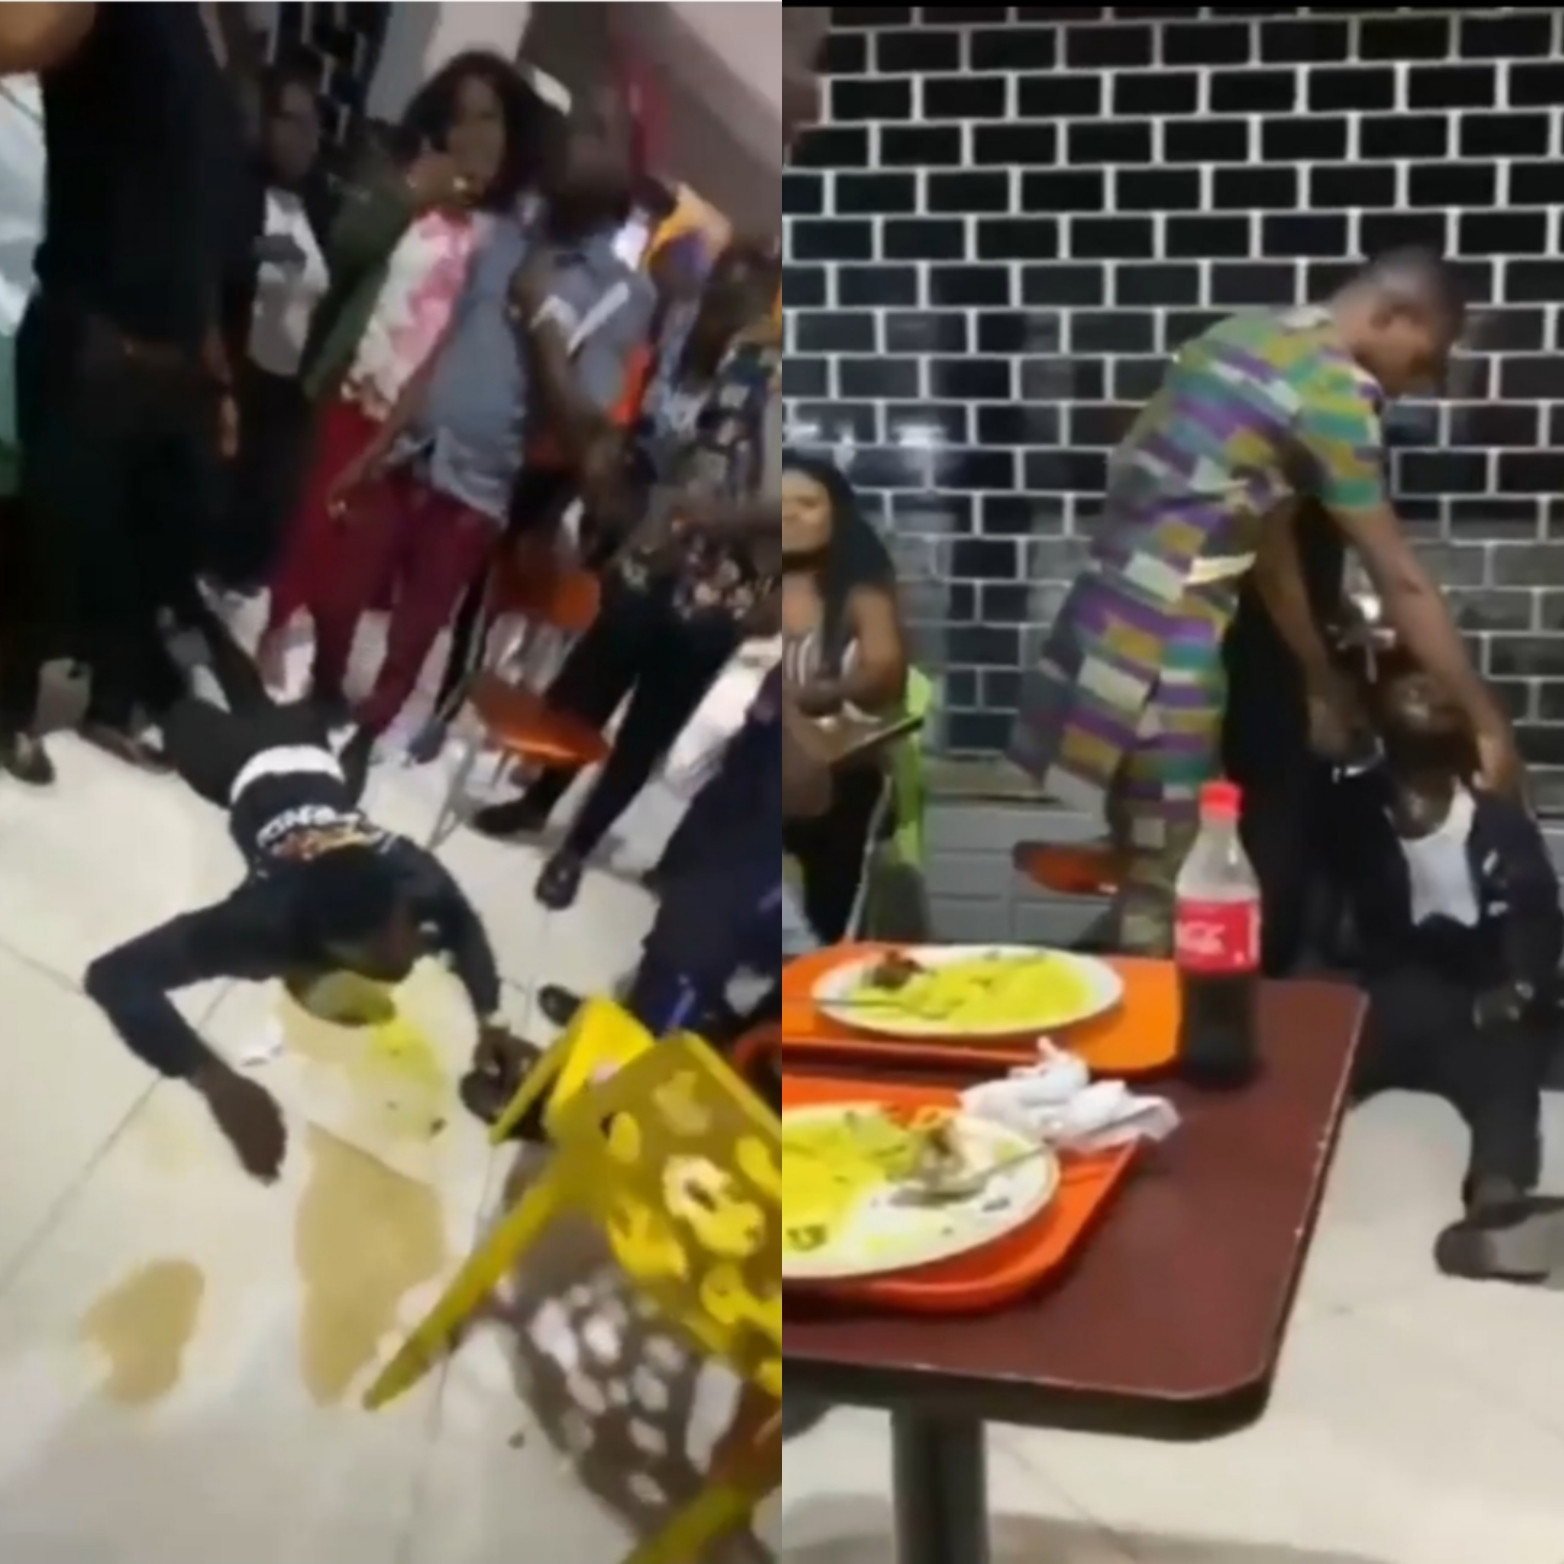 Man begins throwing up after he was forced to consume a friend's drink that he was allegedly caught p*isoning (video)